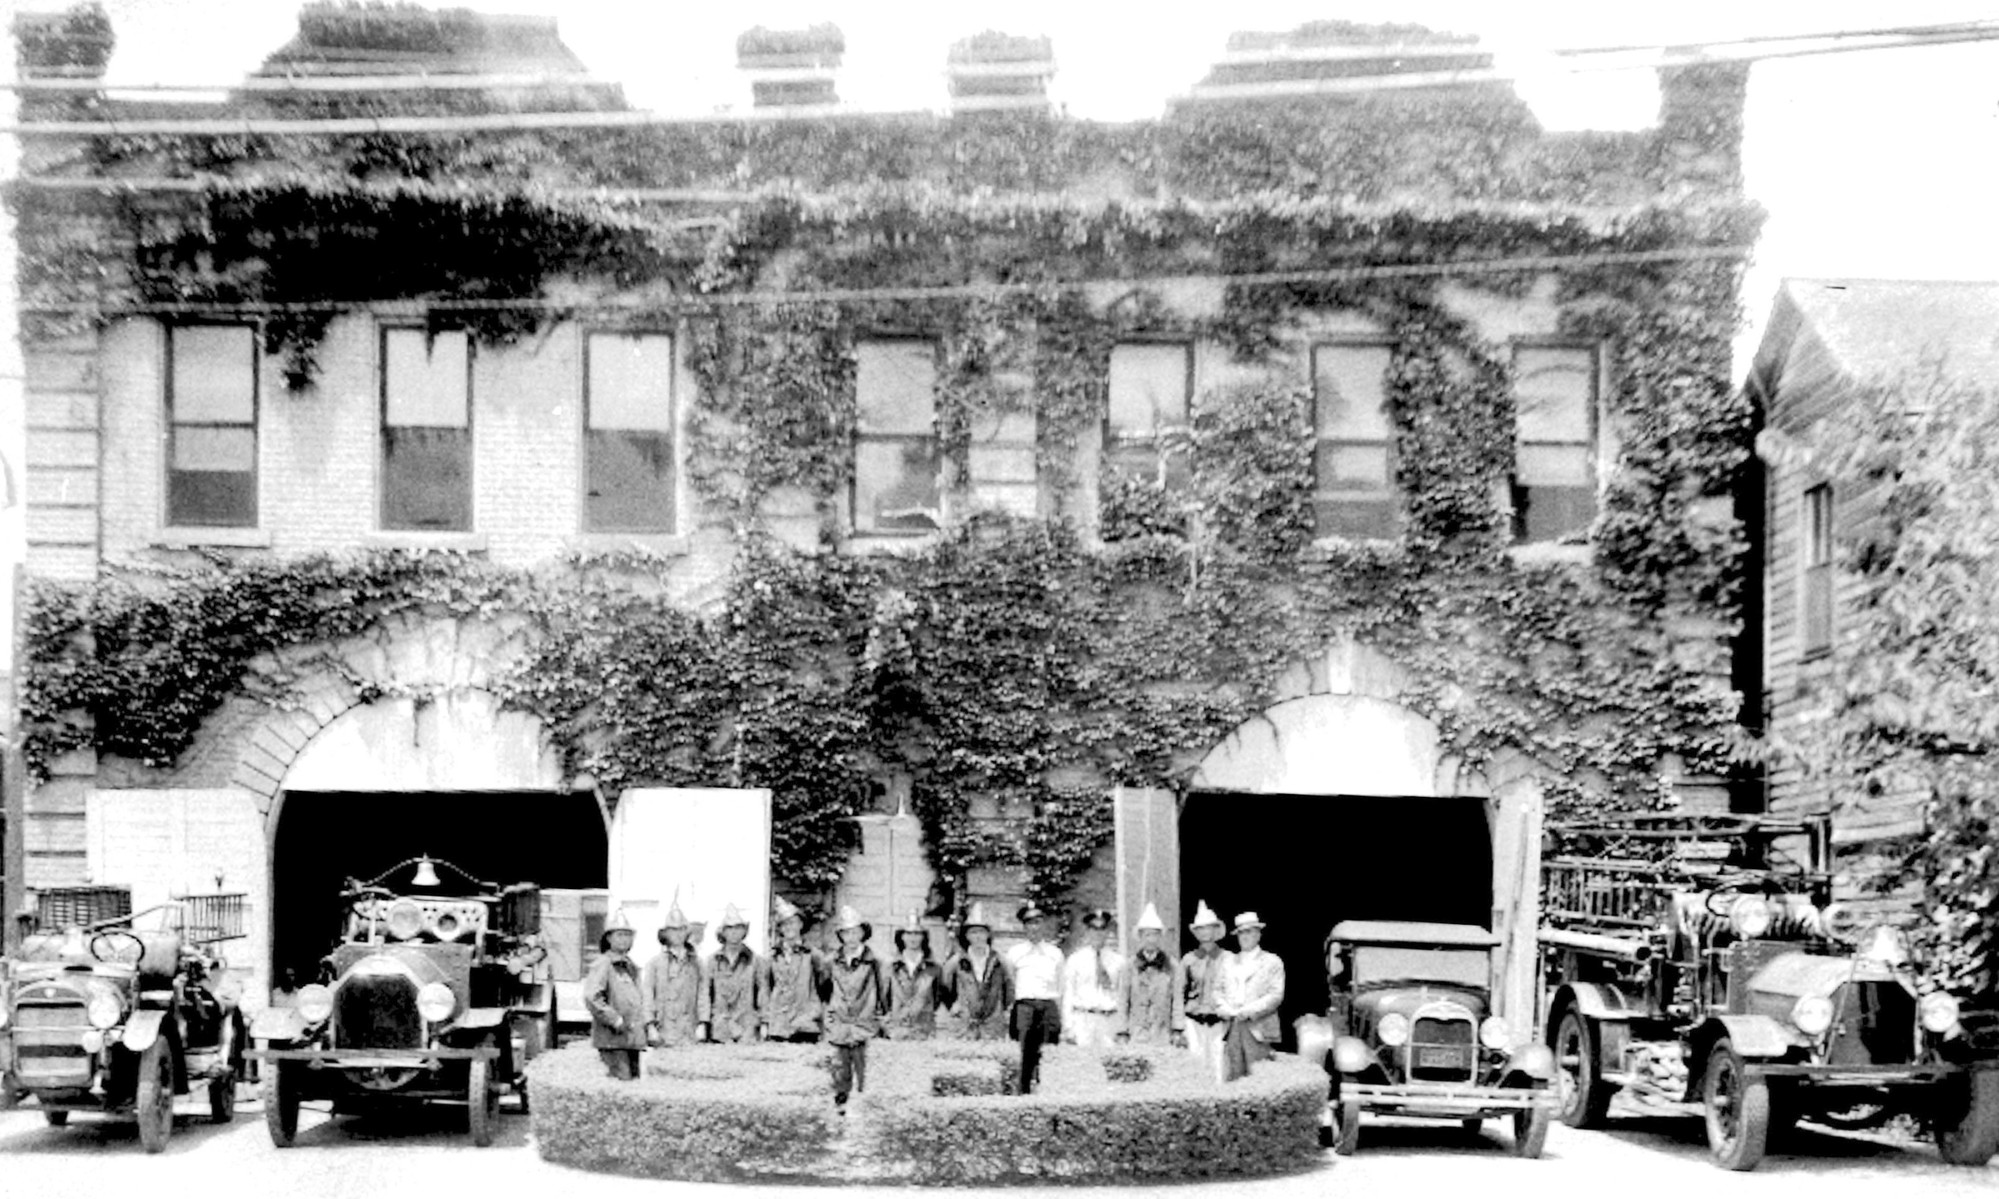 Sumter Fire Department was located on Harvin Street before it was torn down circa 1970.